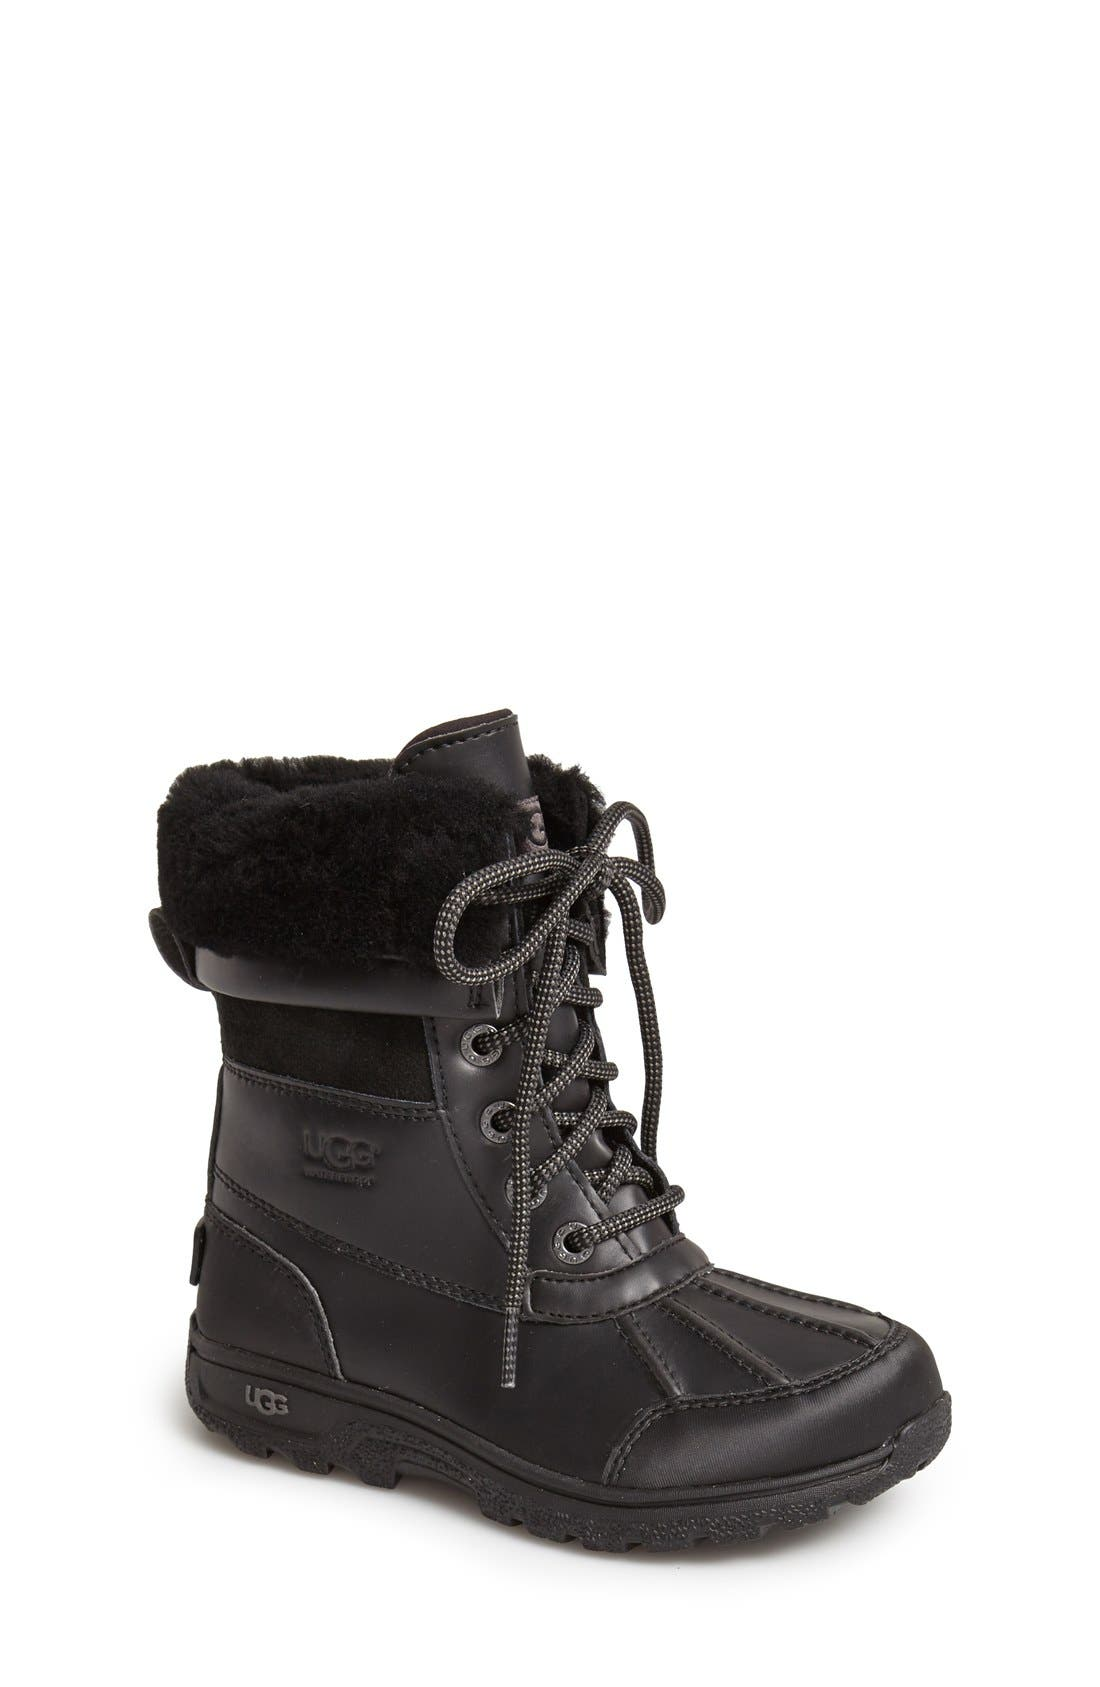 'Butte II' Waterproof Leather Boot,                             Main thumbnail 3, color,